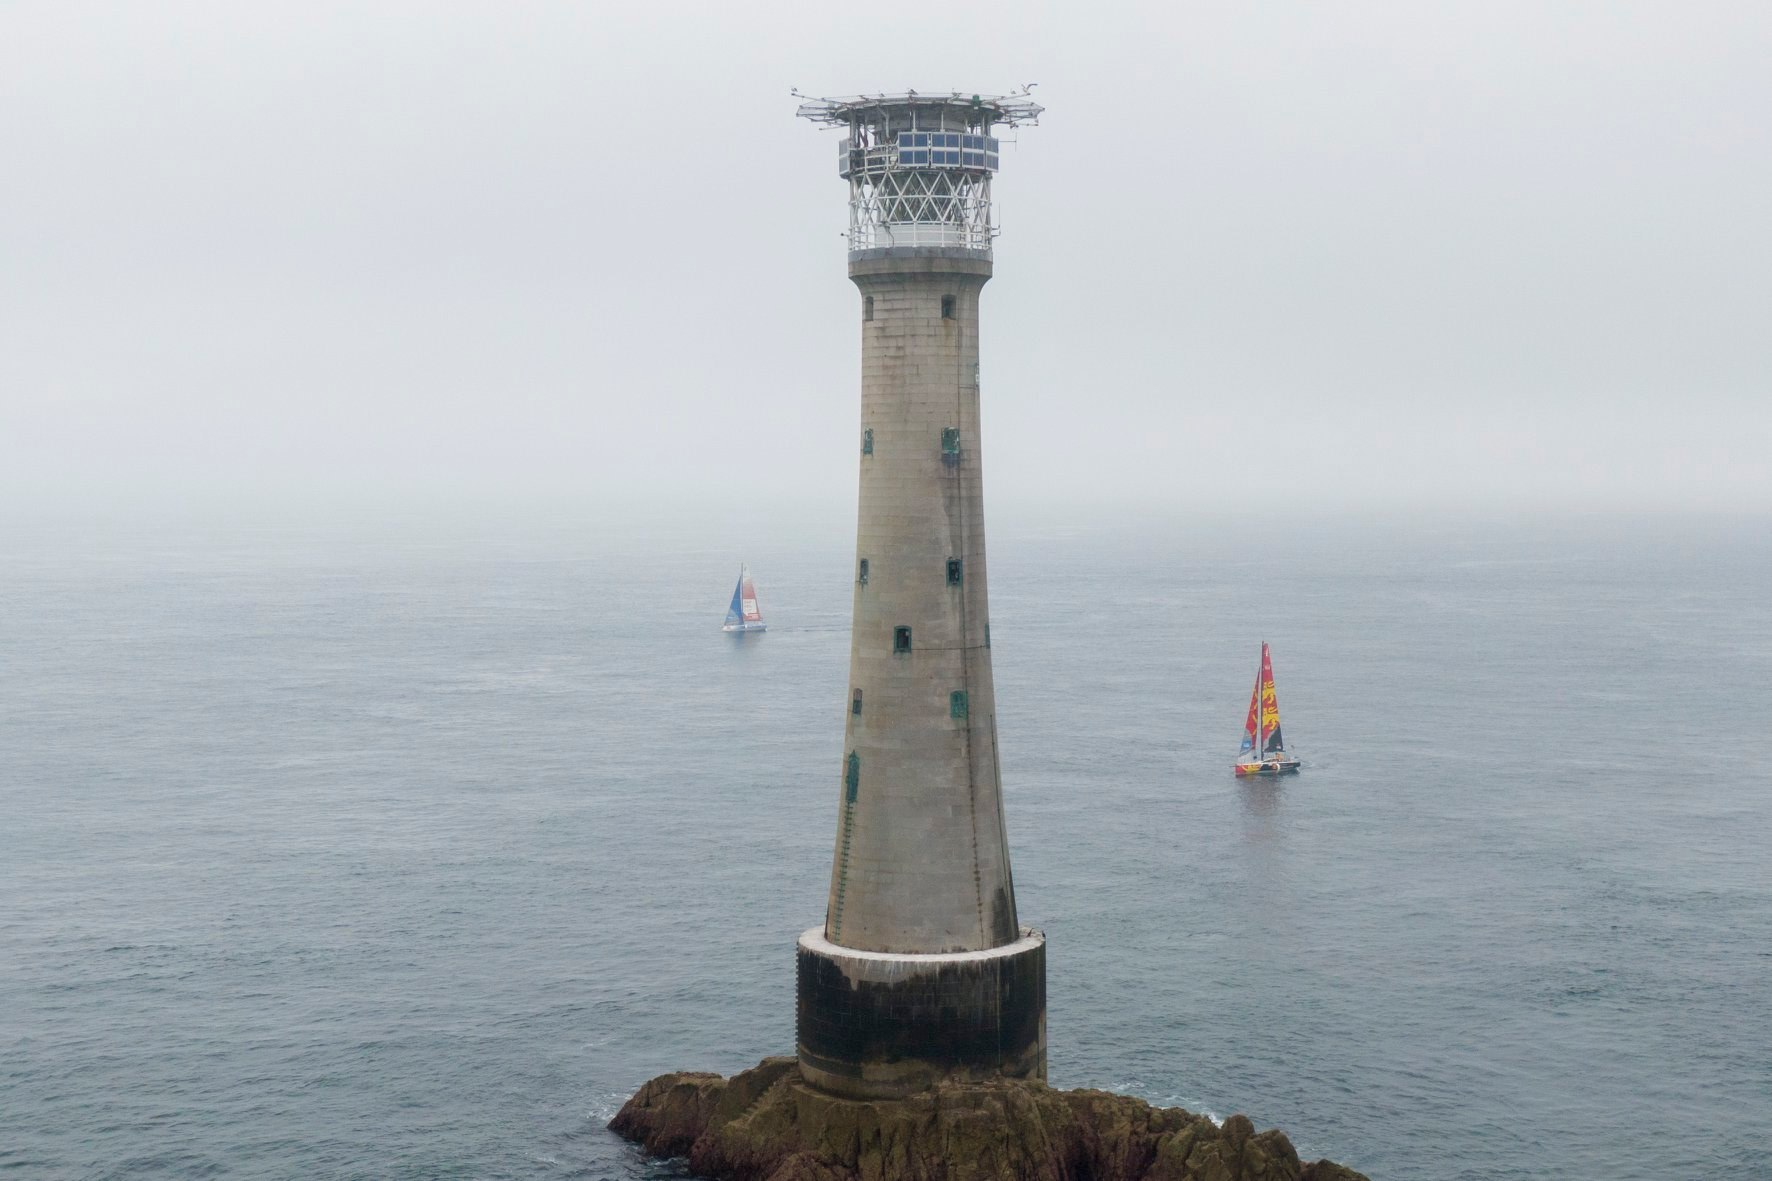 Aerial shot of 2 boats sailing past a lighthouse on a rock in foggy conditions.